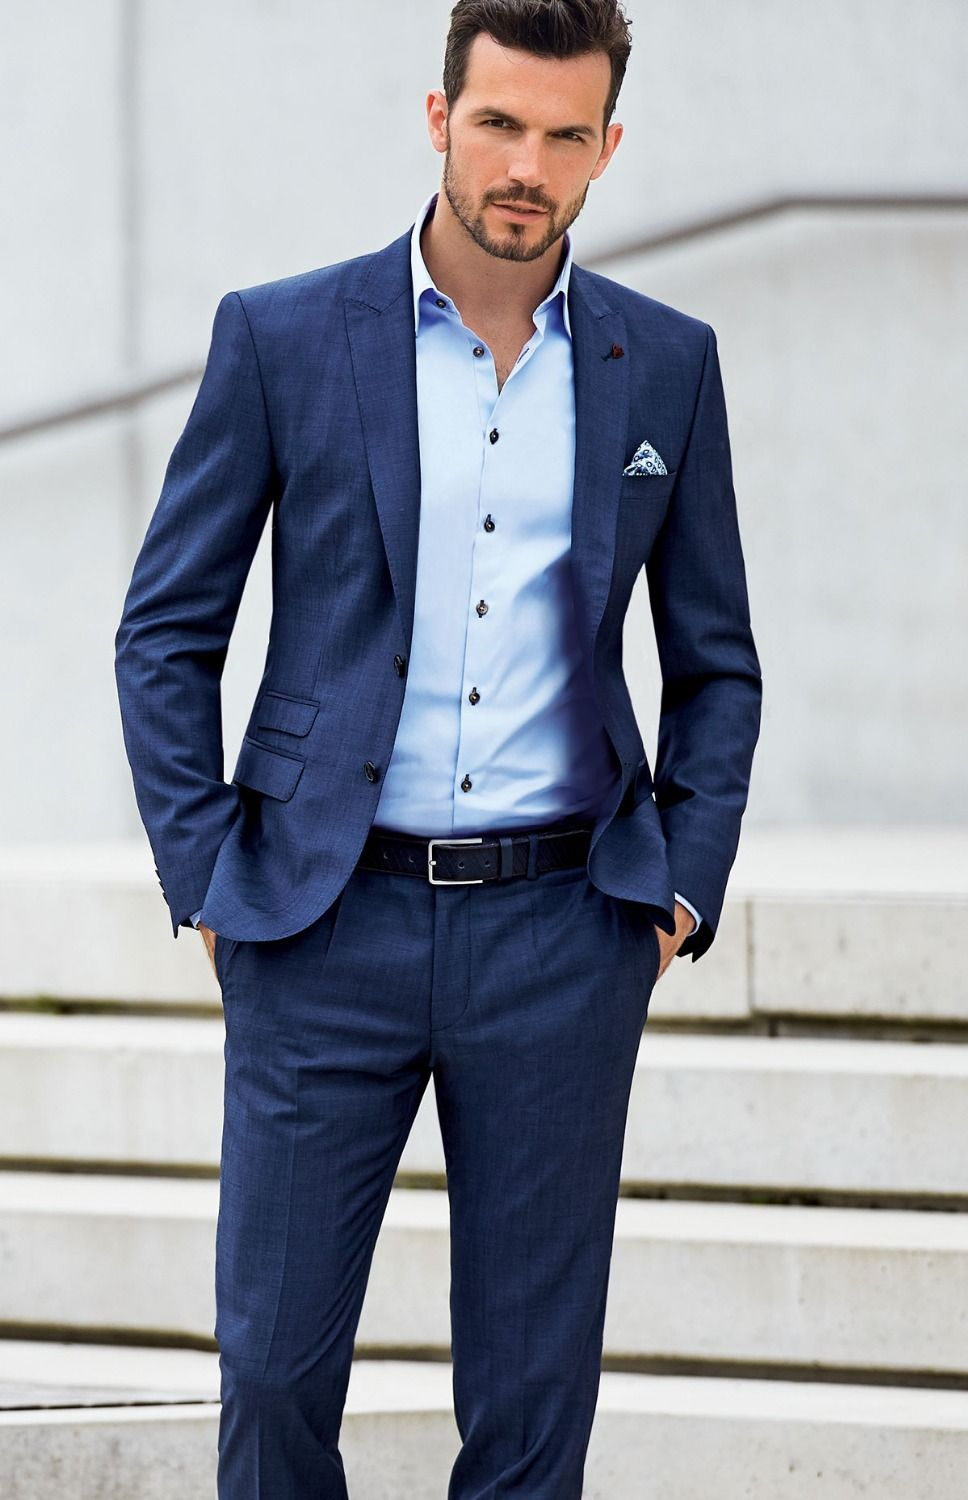 grooms attire casual no tie - Google Search | ♥Wedding Day Dreams ...